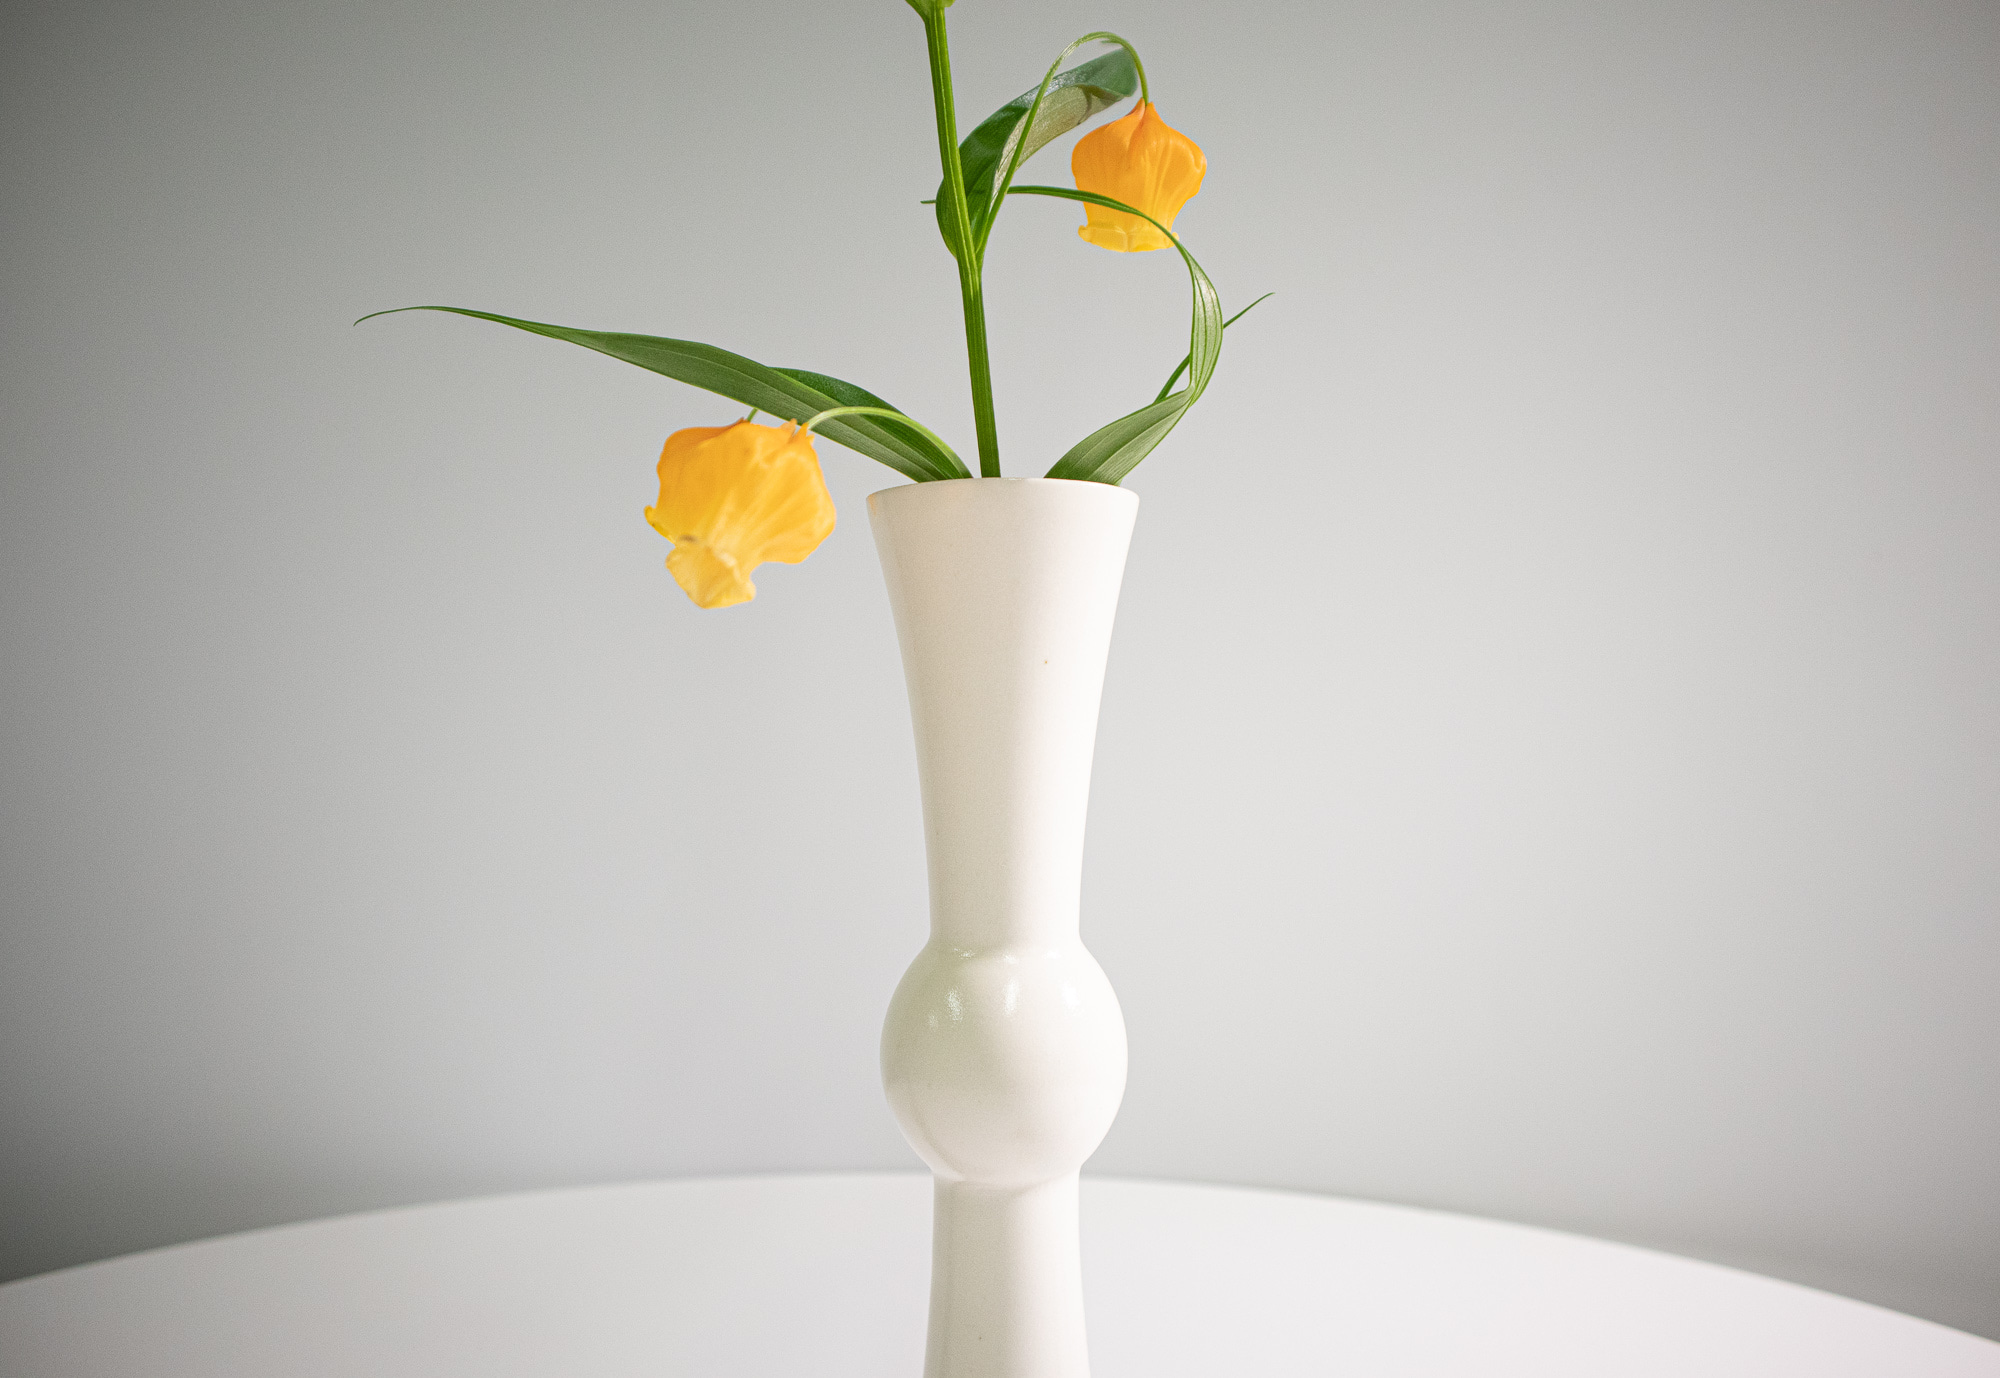 '19 SUMMER PESTLE VASE with sandersonia